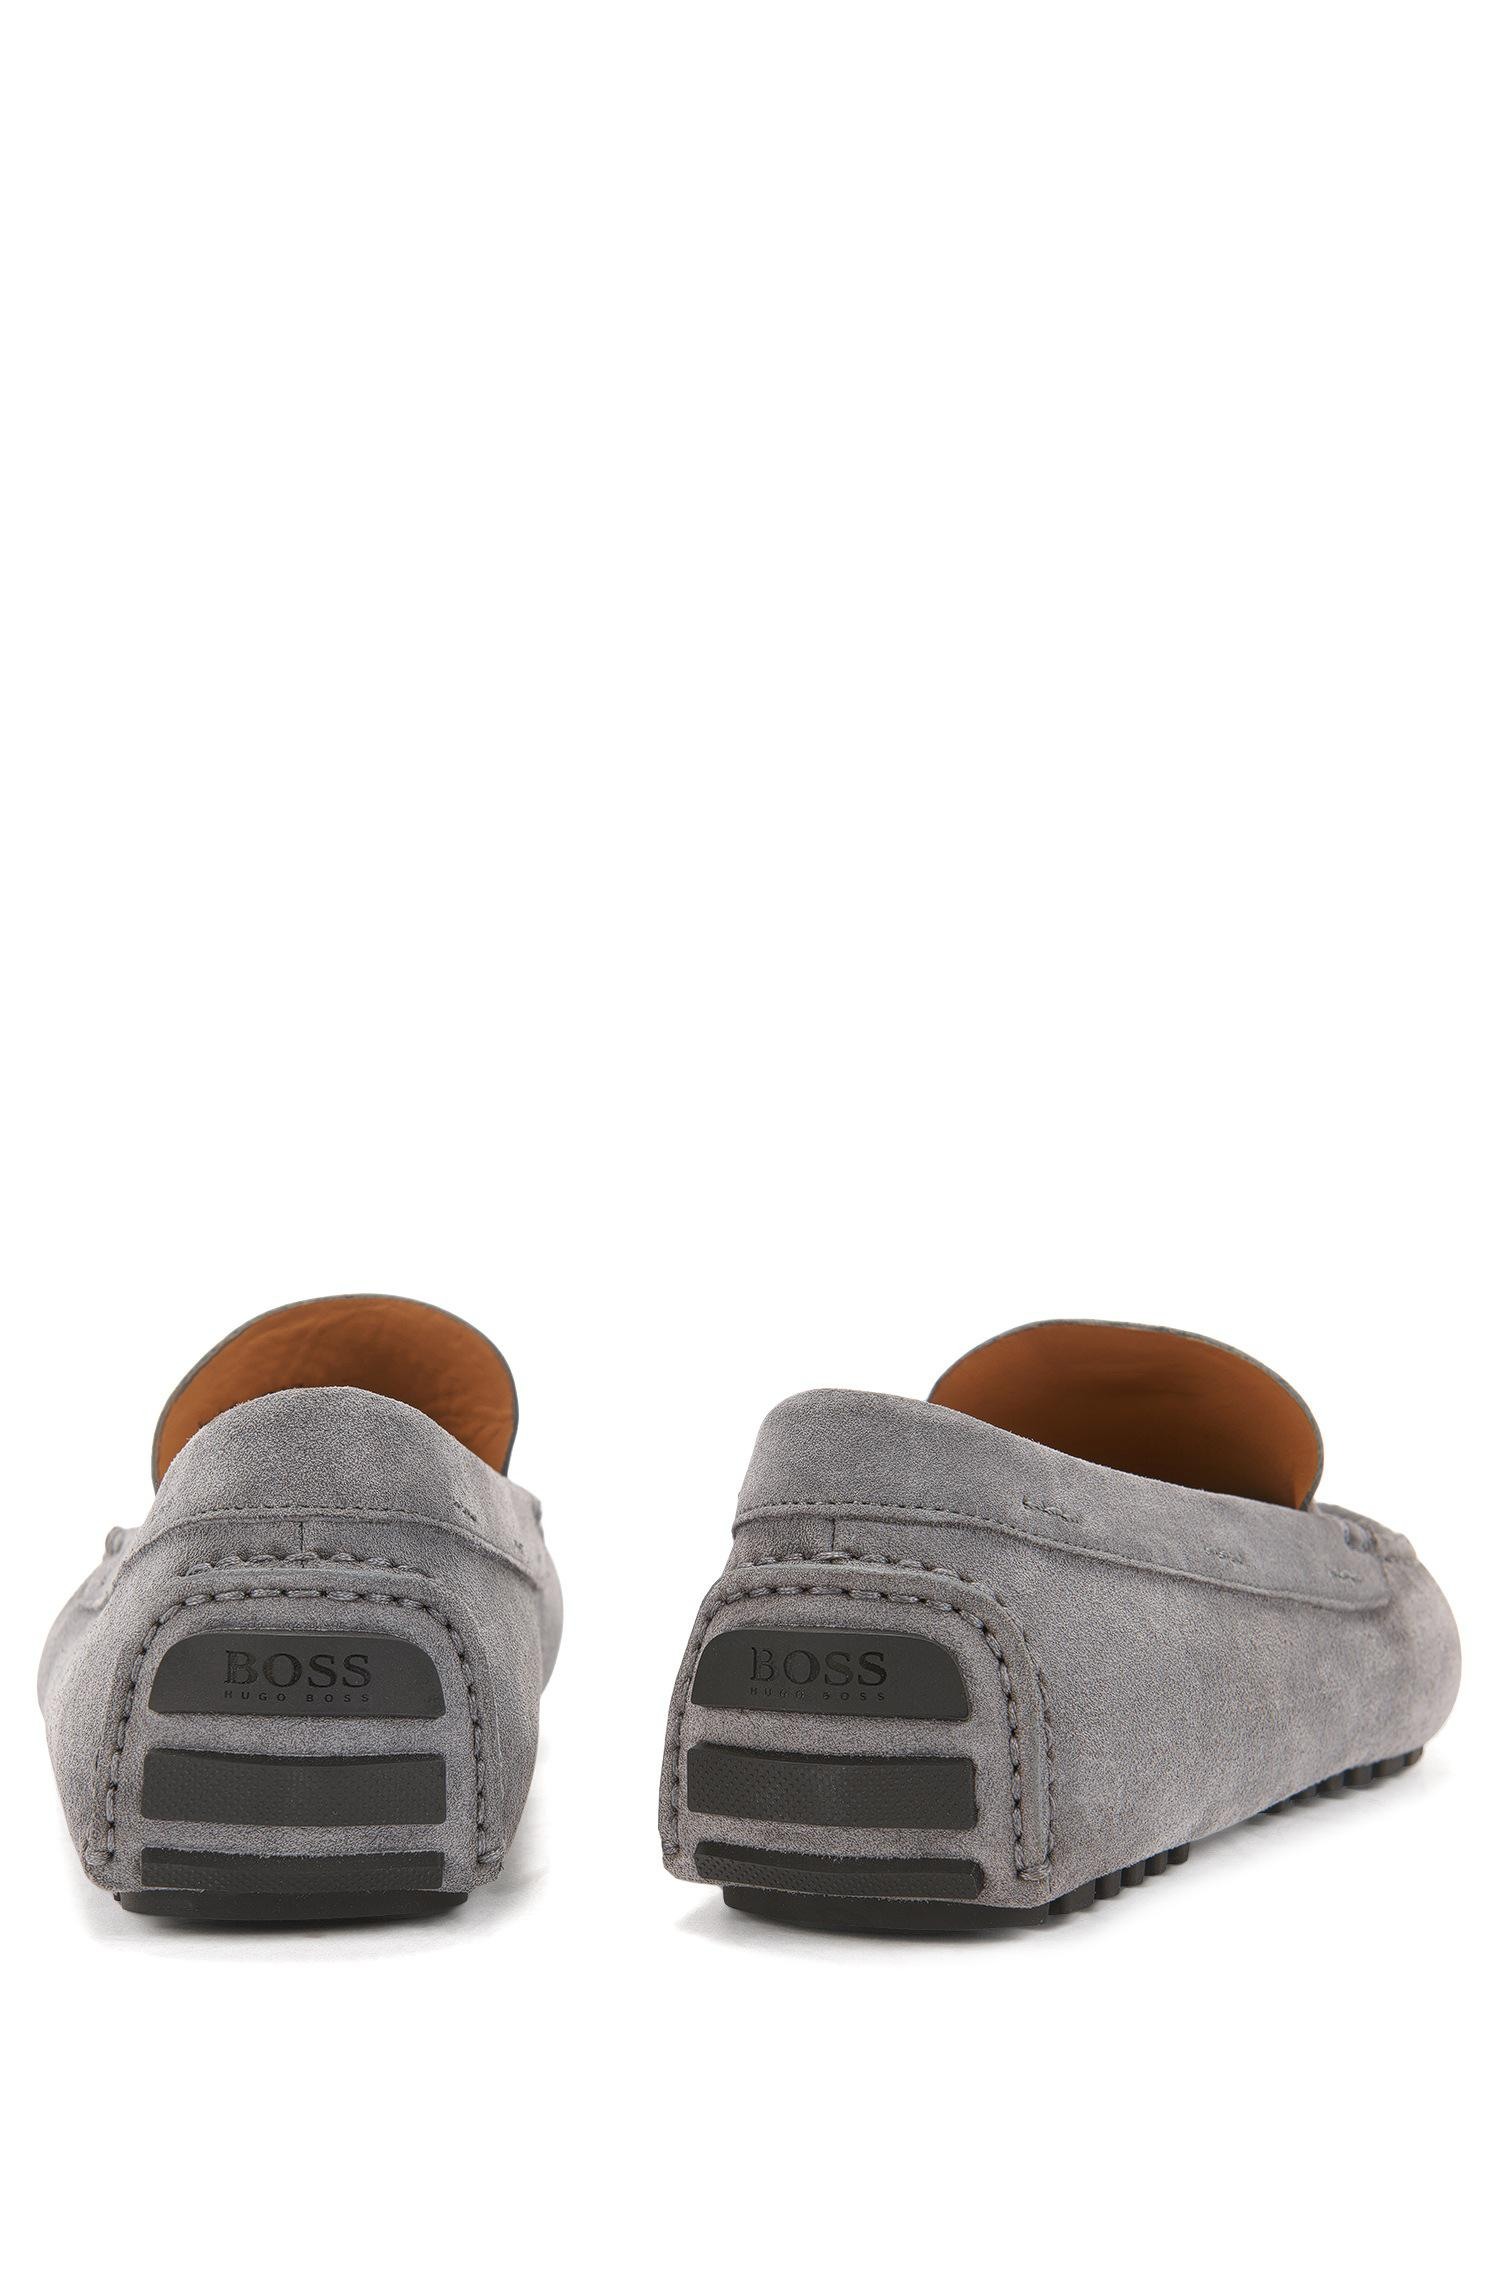 hugo boss suede driving shoes cheap online